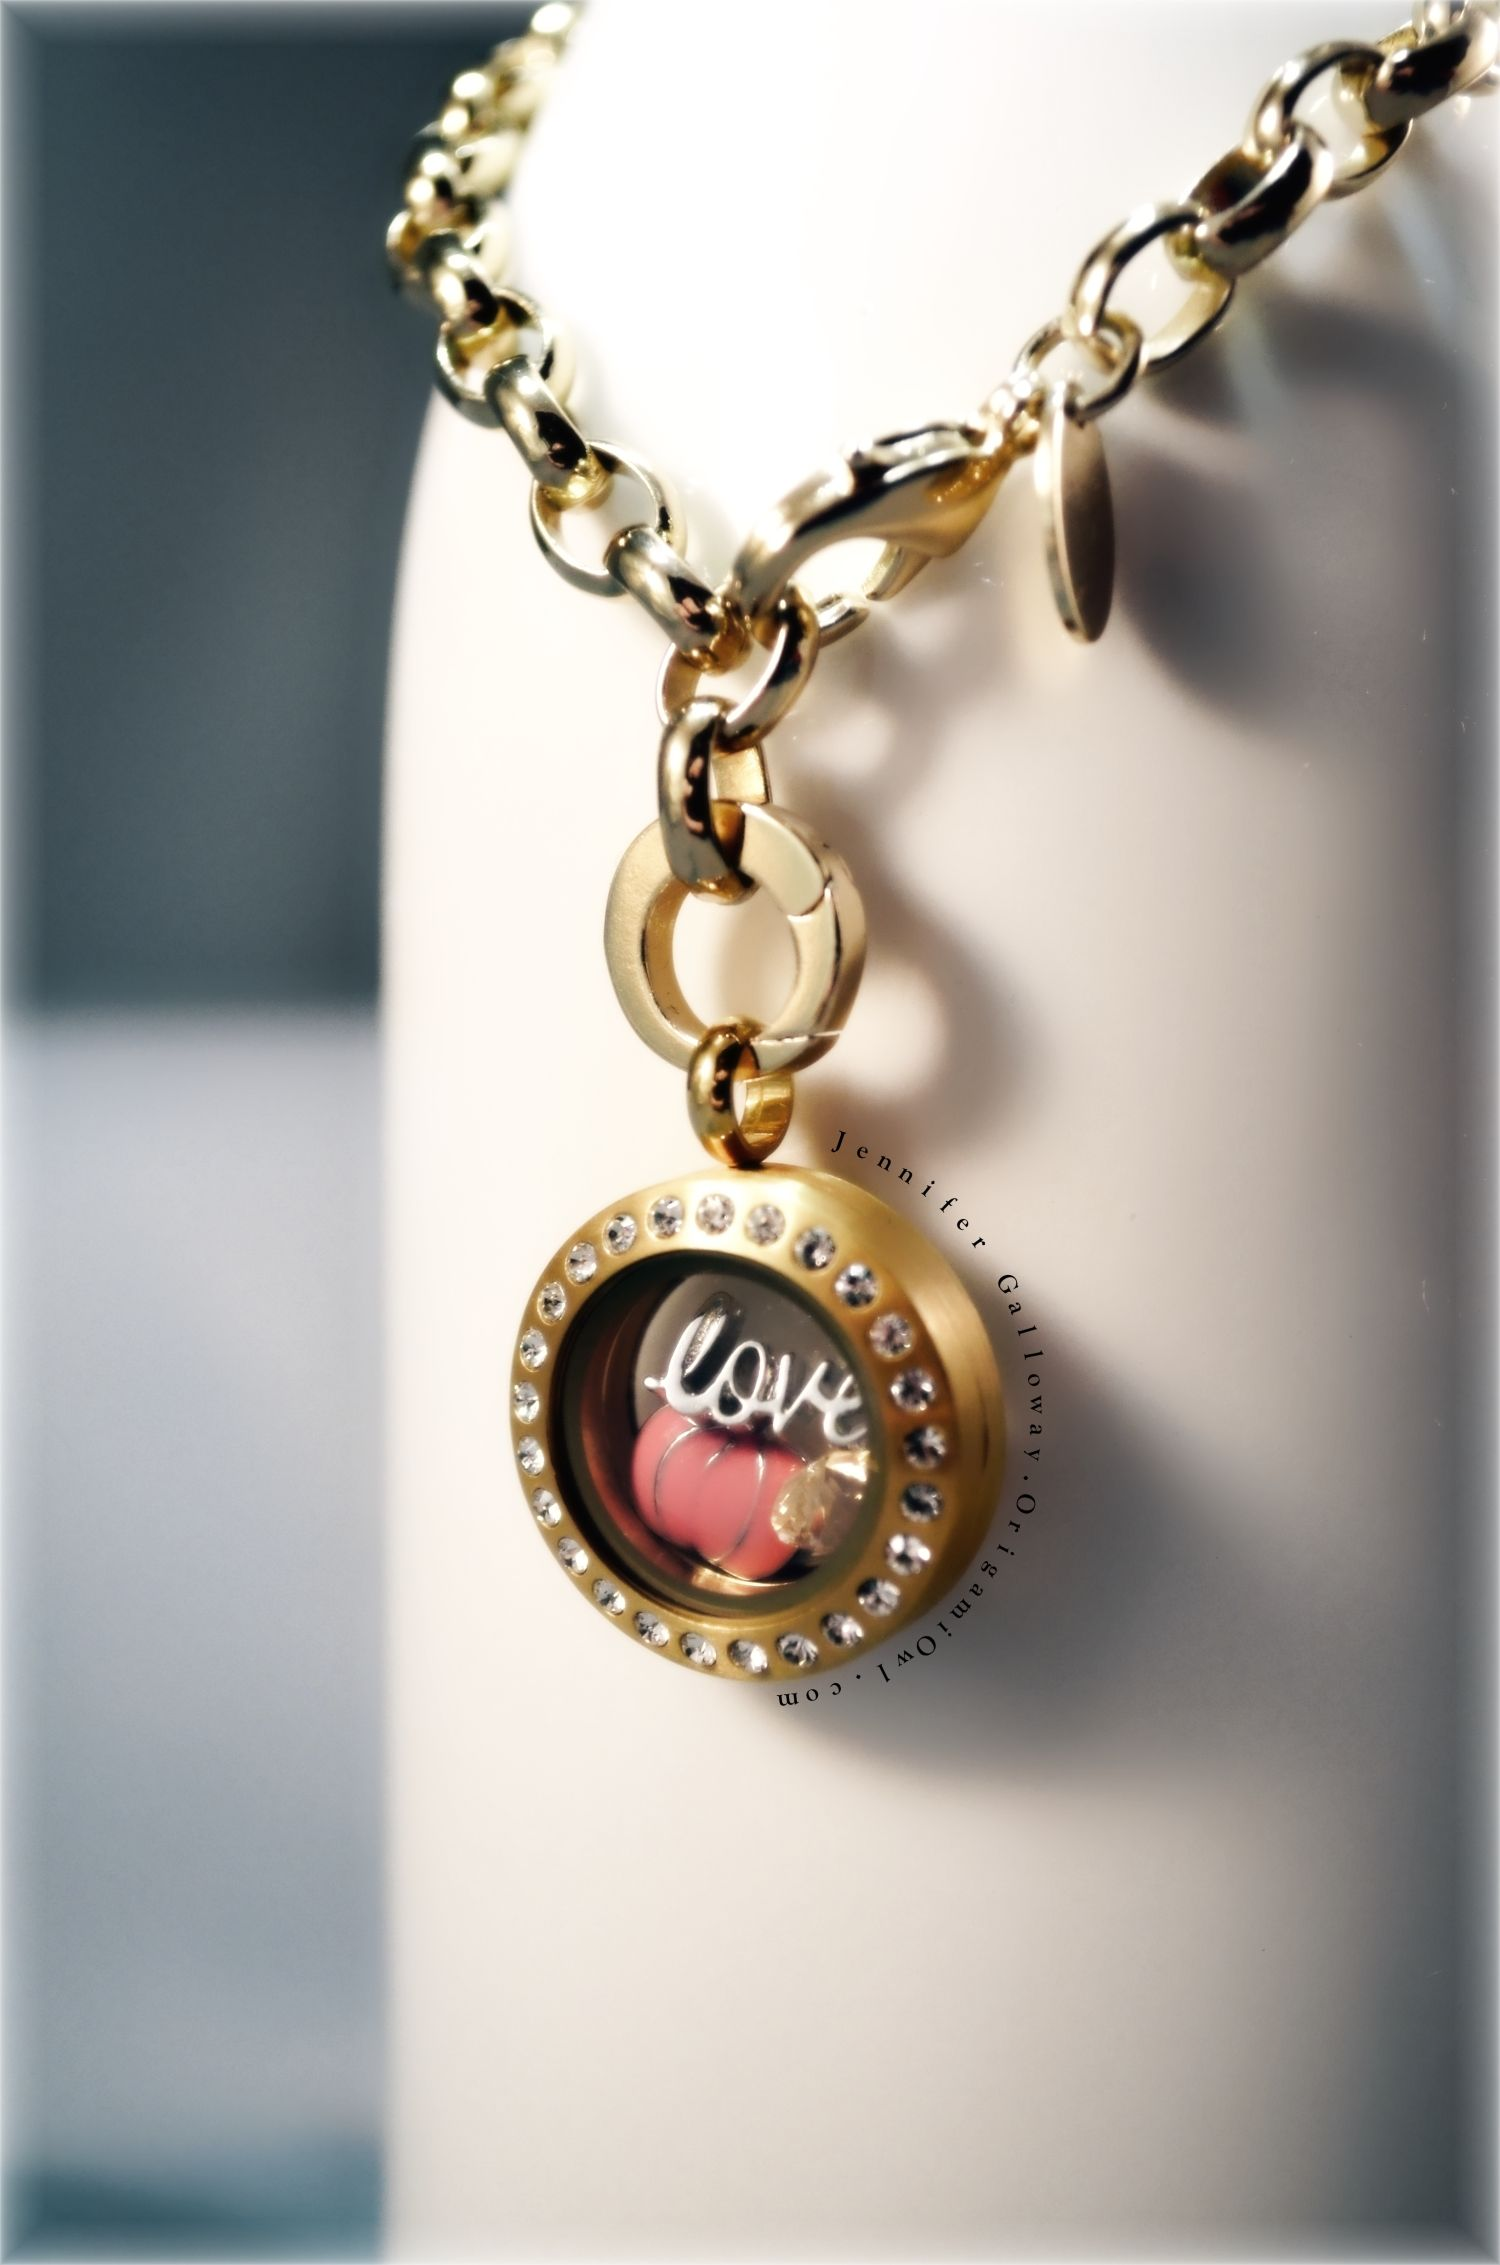 in bracelets pin cupcakes what cherries include bracelet lockets will and cocktails you your